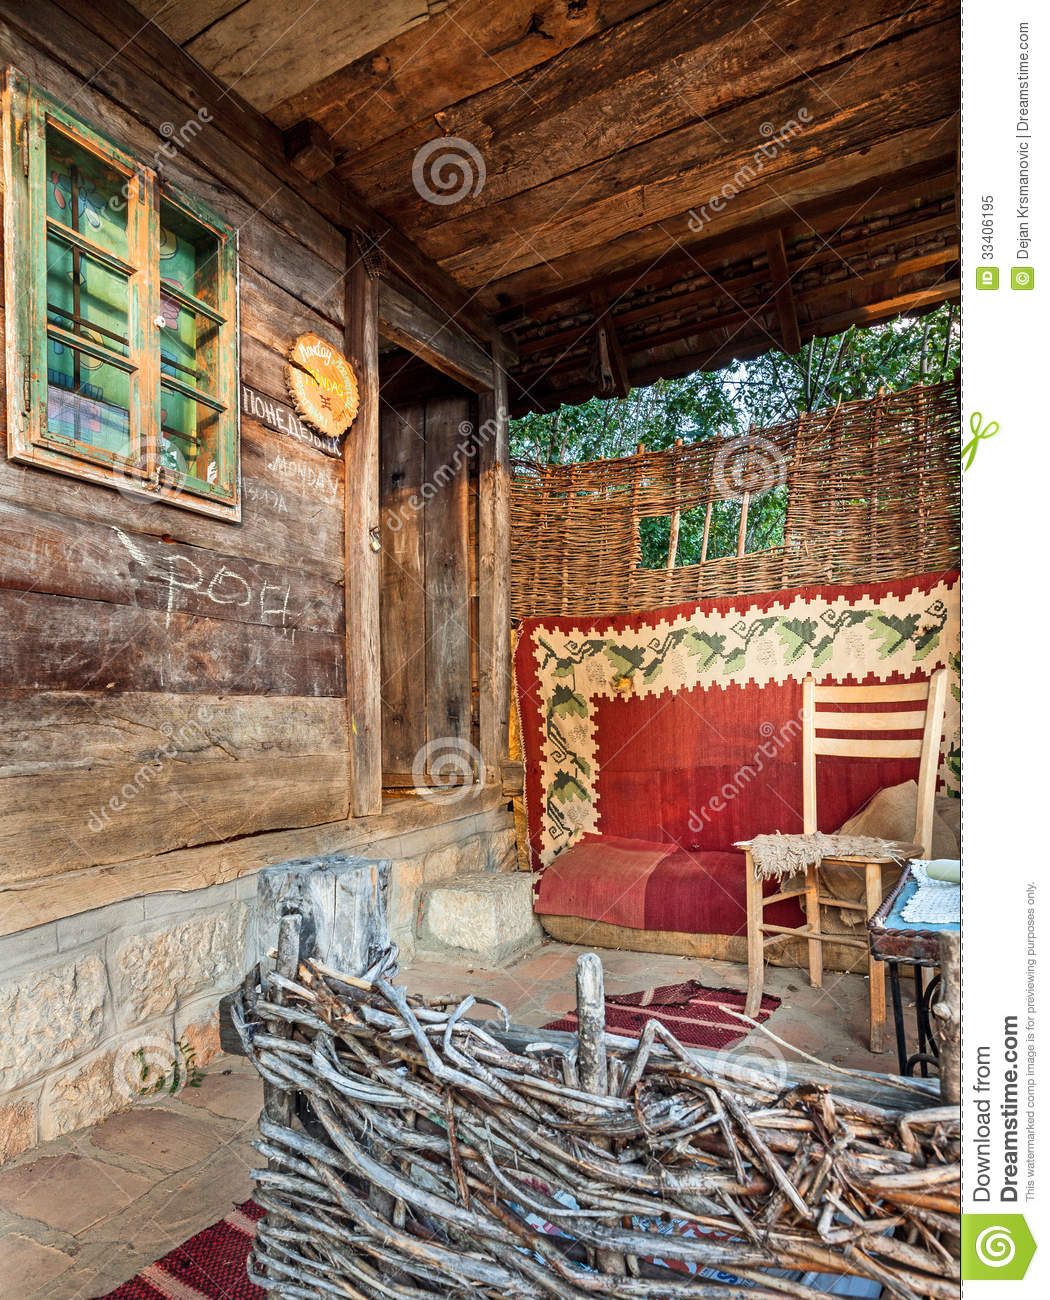 Wooden house royalty free stock photo image 33406195 - Houses made from natural materials ...